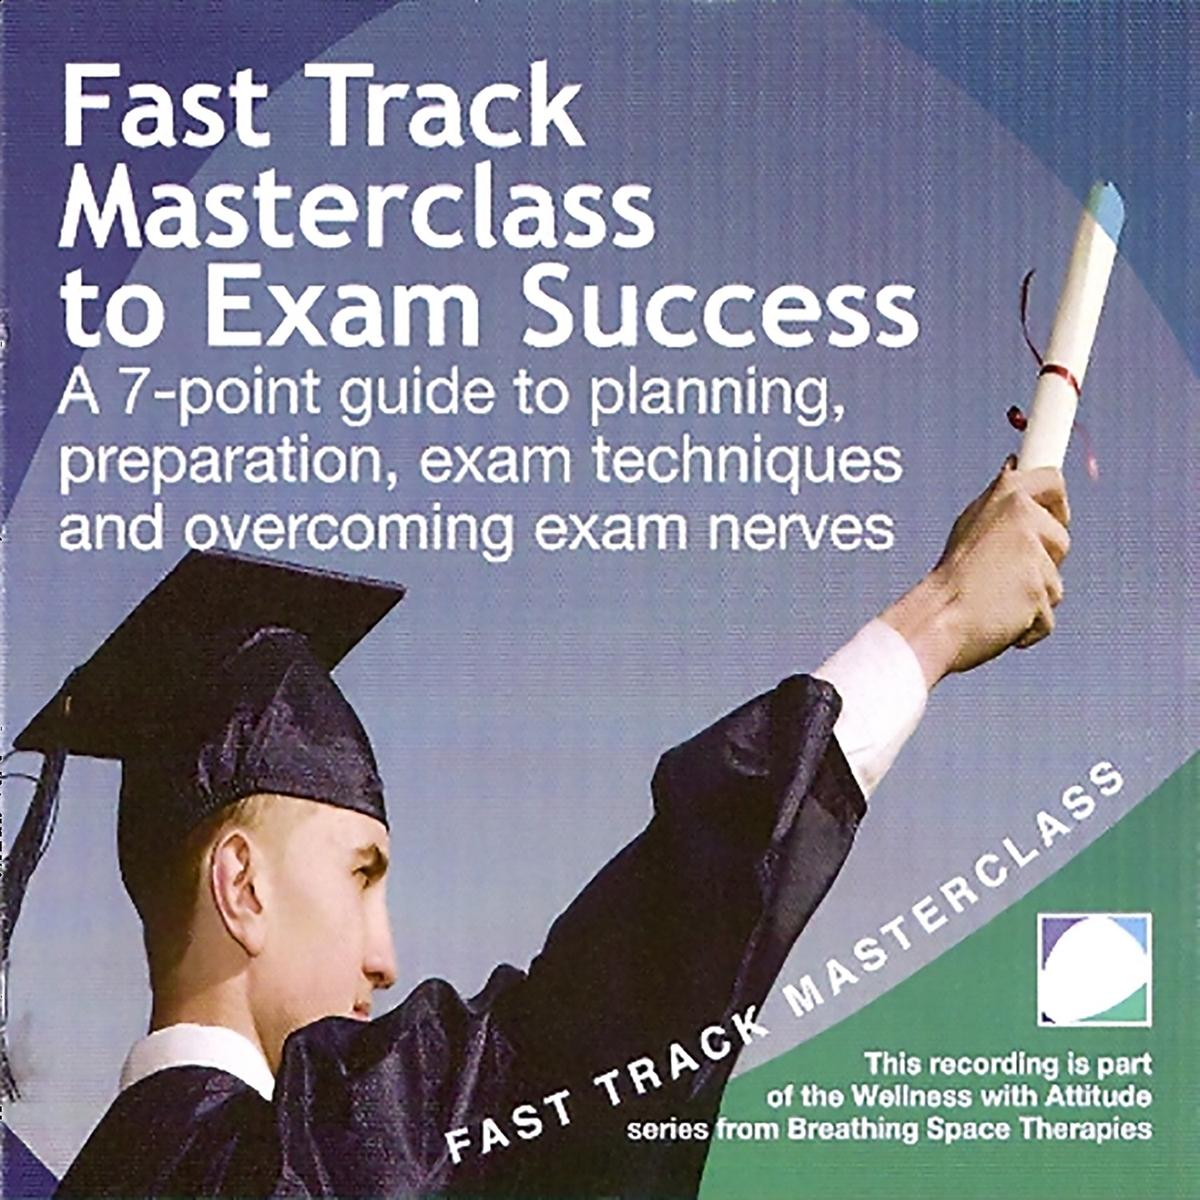 Fast track masterclass to exam success - Audiobook